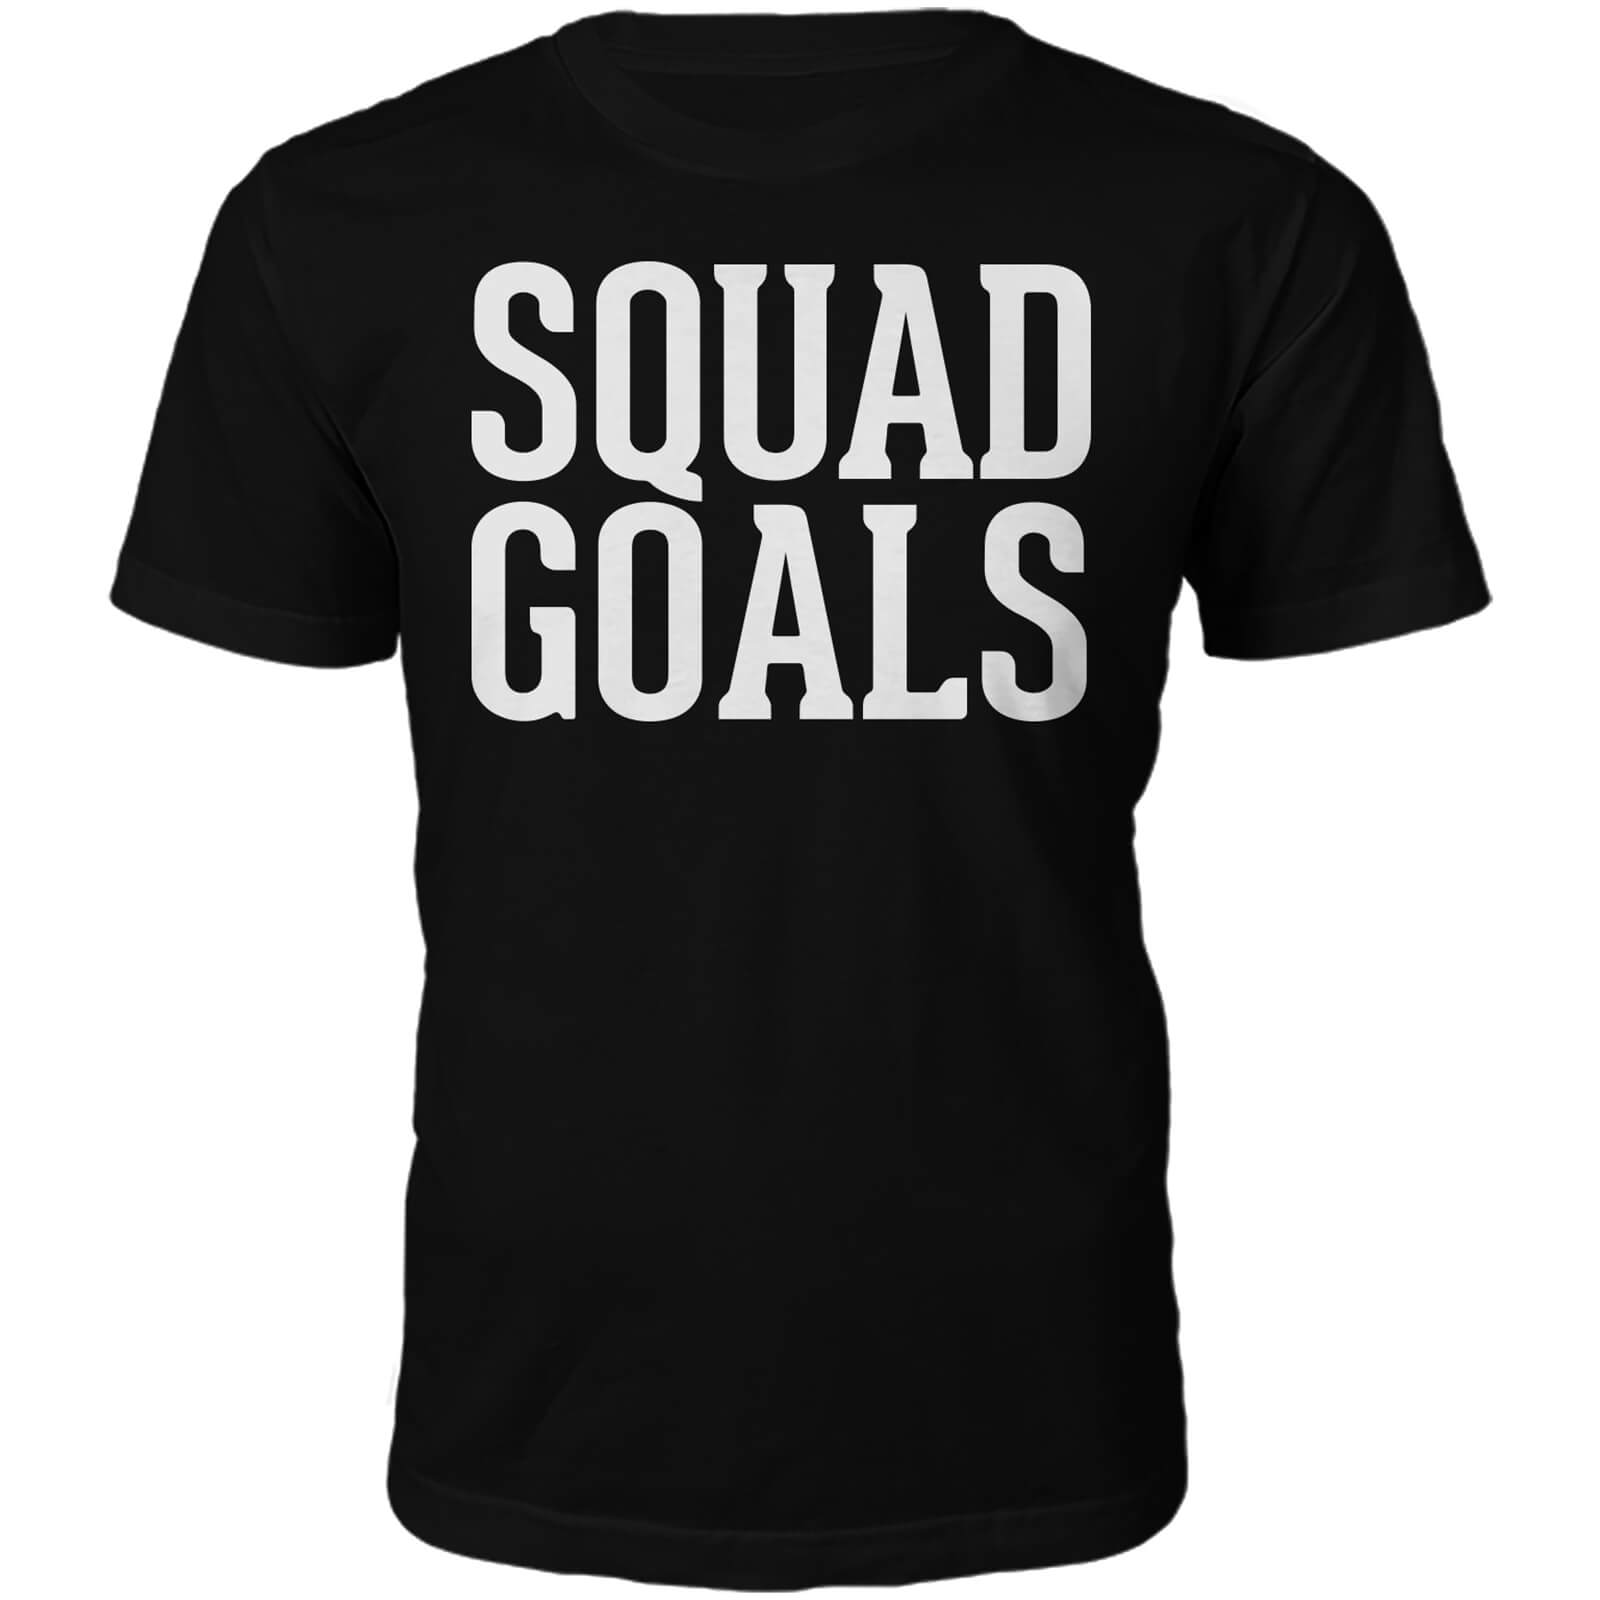 Squad Goals Slogan T-Shirt - Black